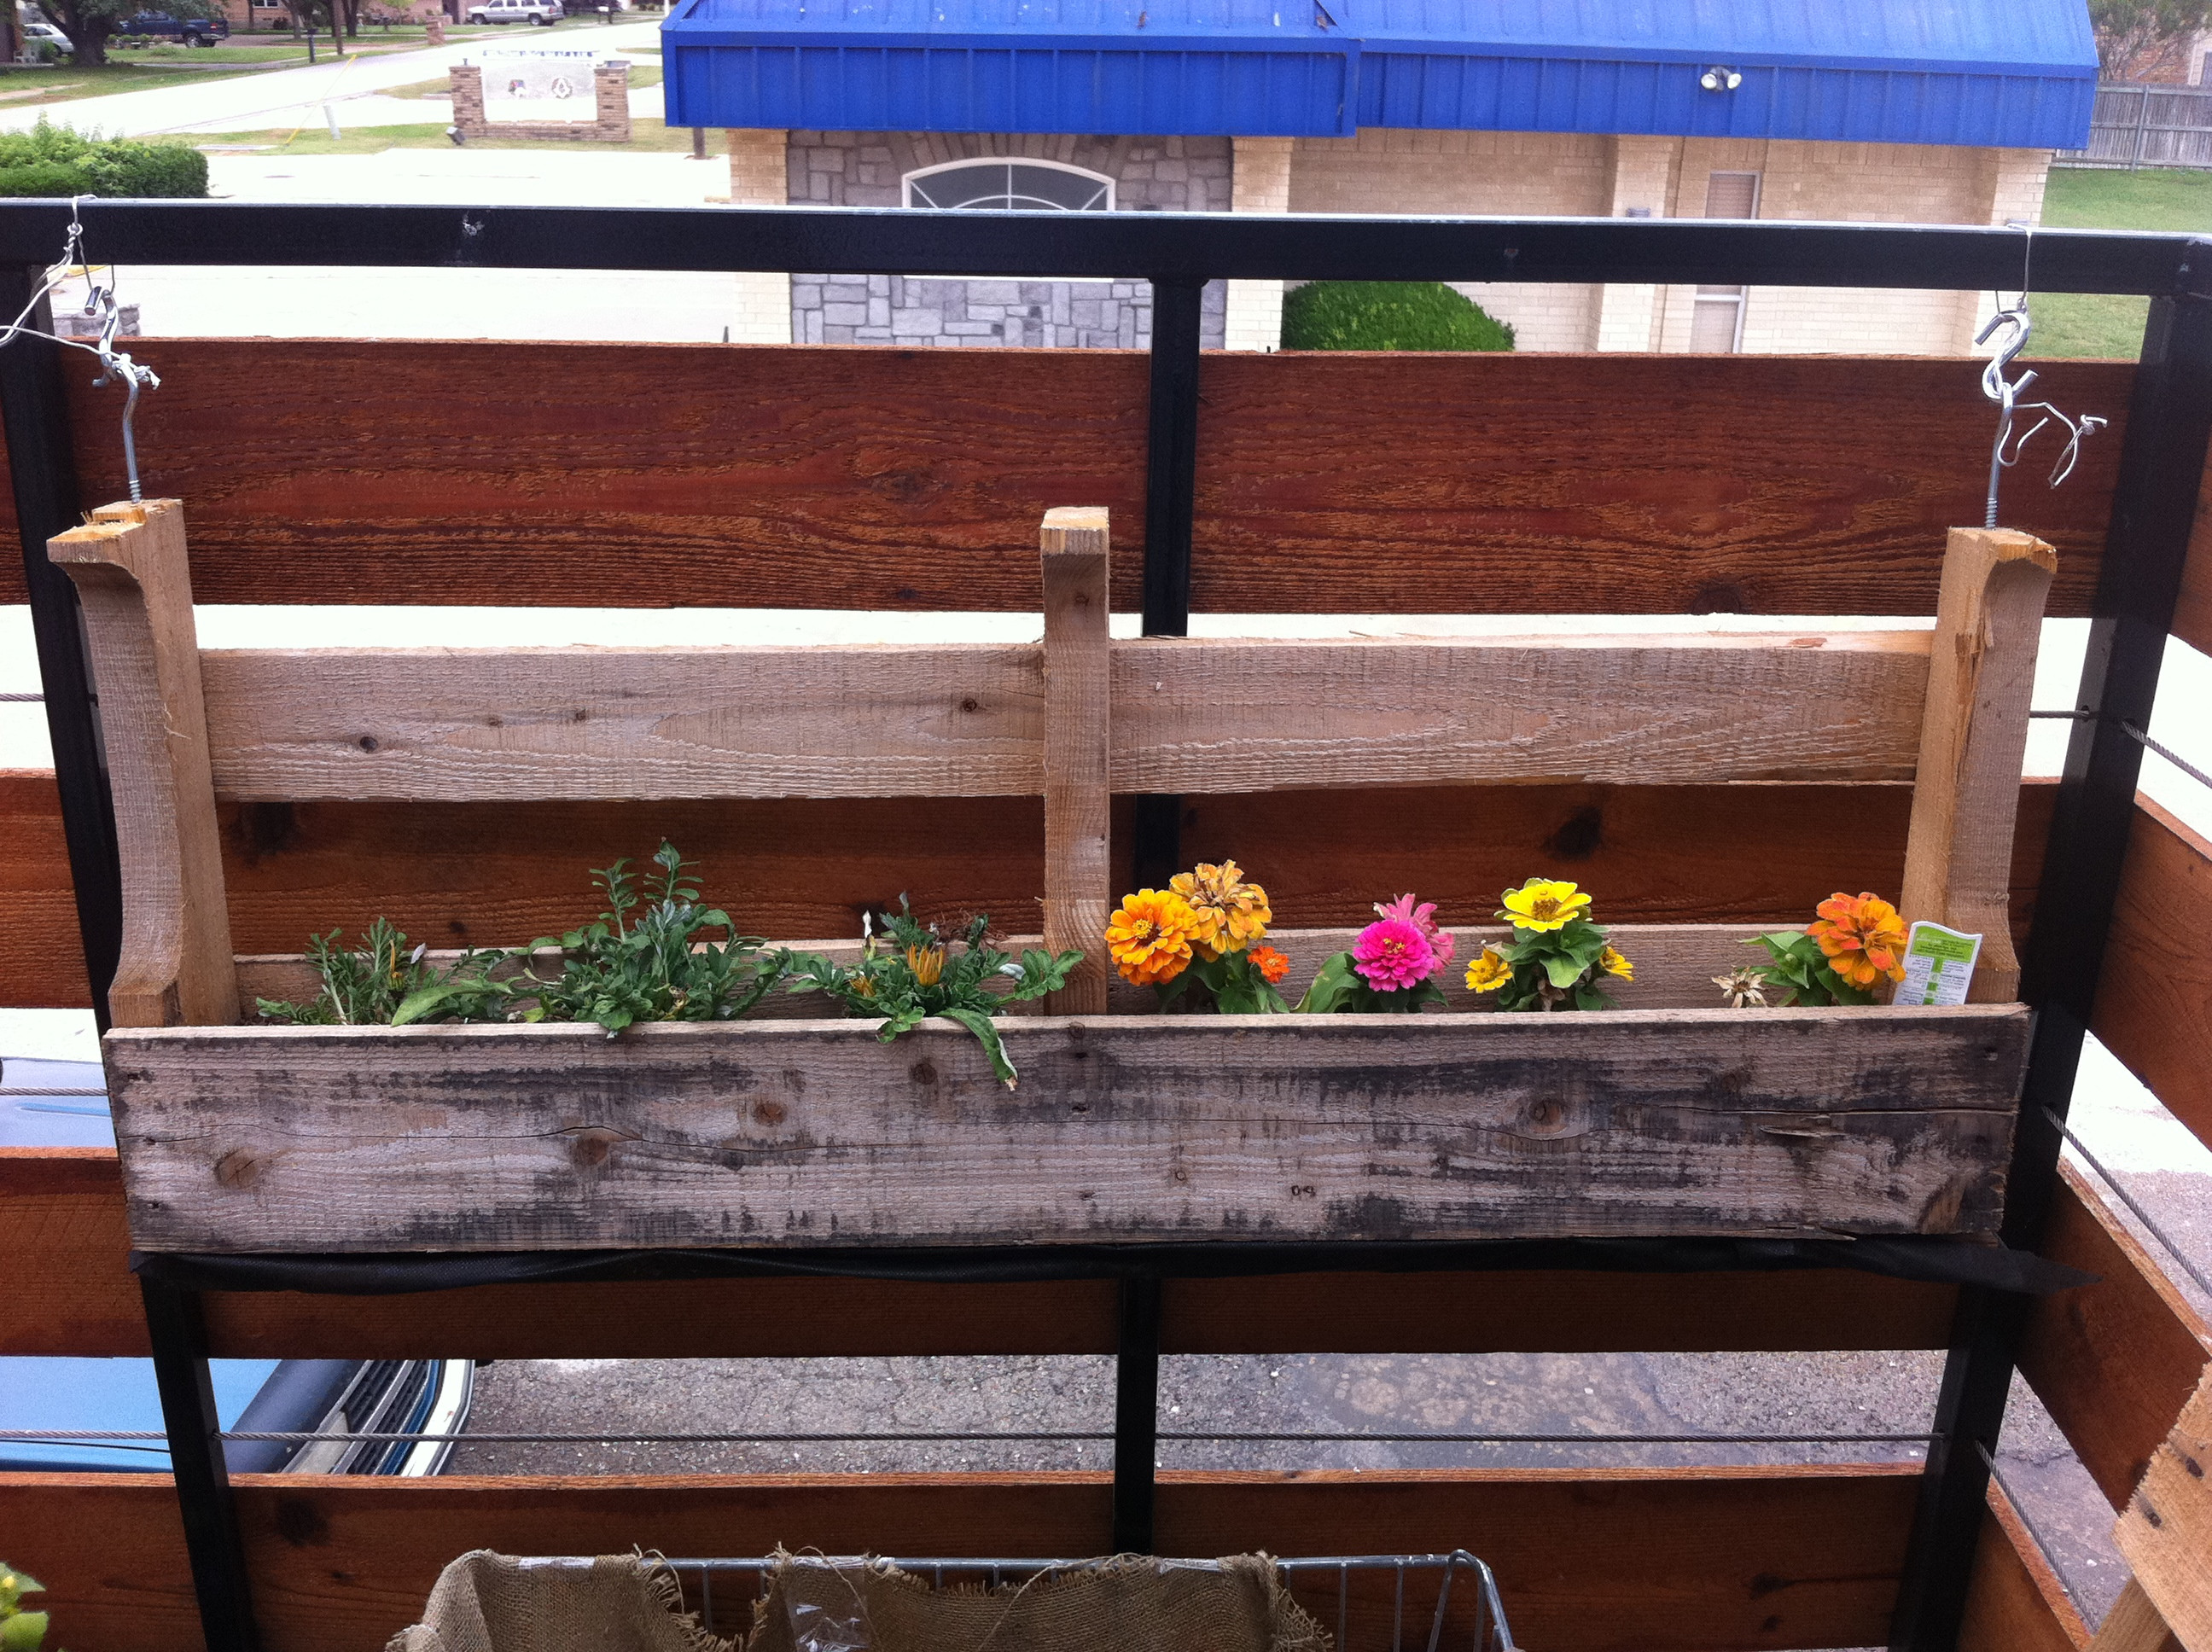 Best ideas about DIY Planter Box . Save or Pin diy flower box Now.